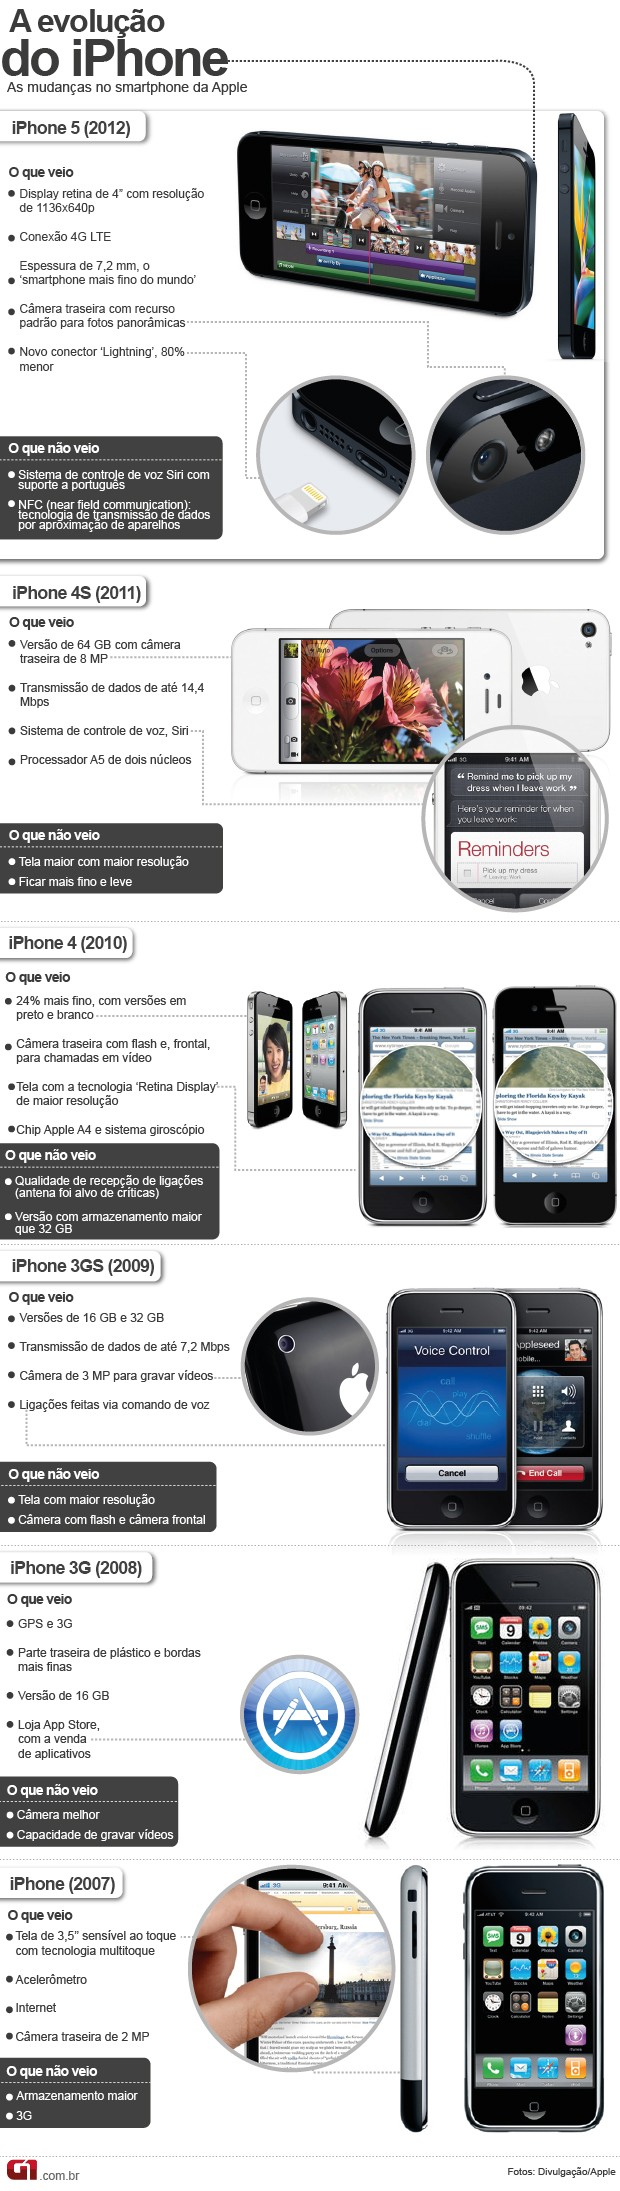 História do iPhone (Foto: Arte G1)